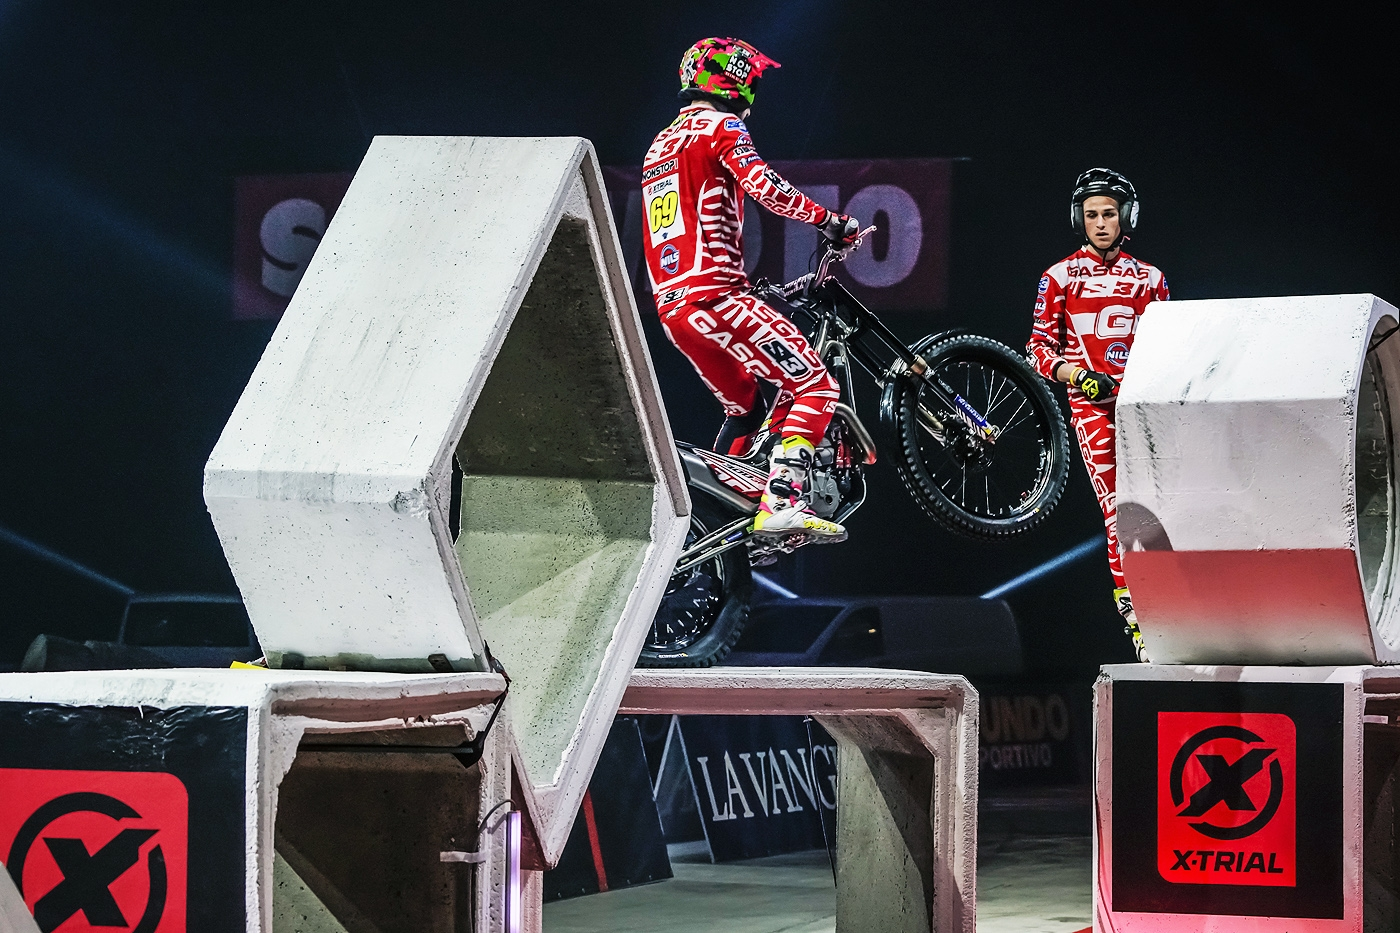 An exciting X-Trial is set up for Bilbao